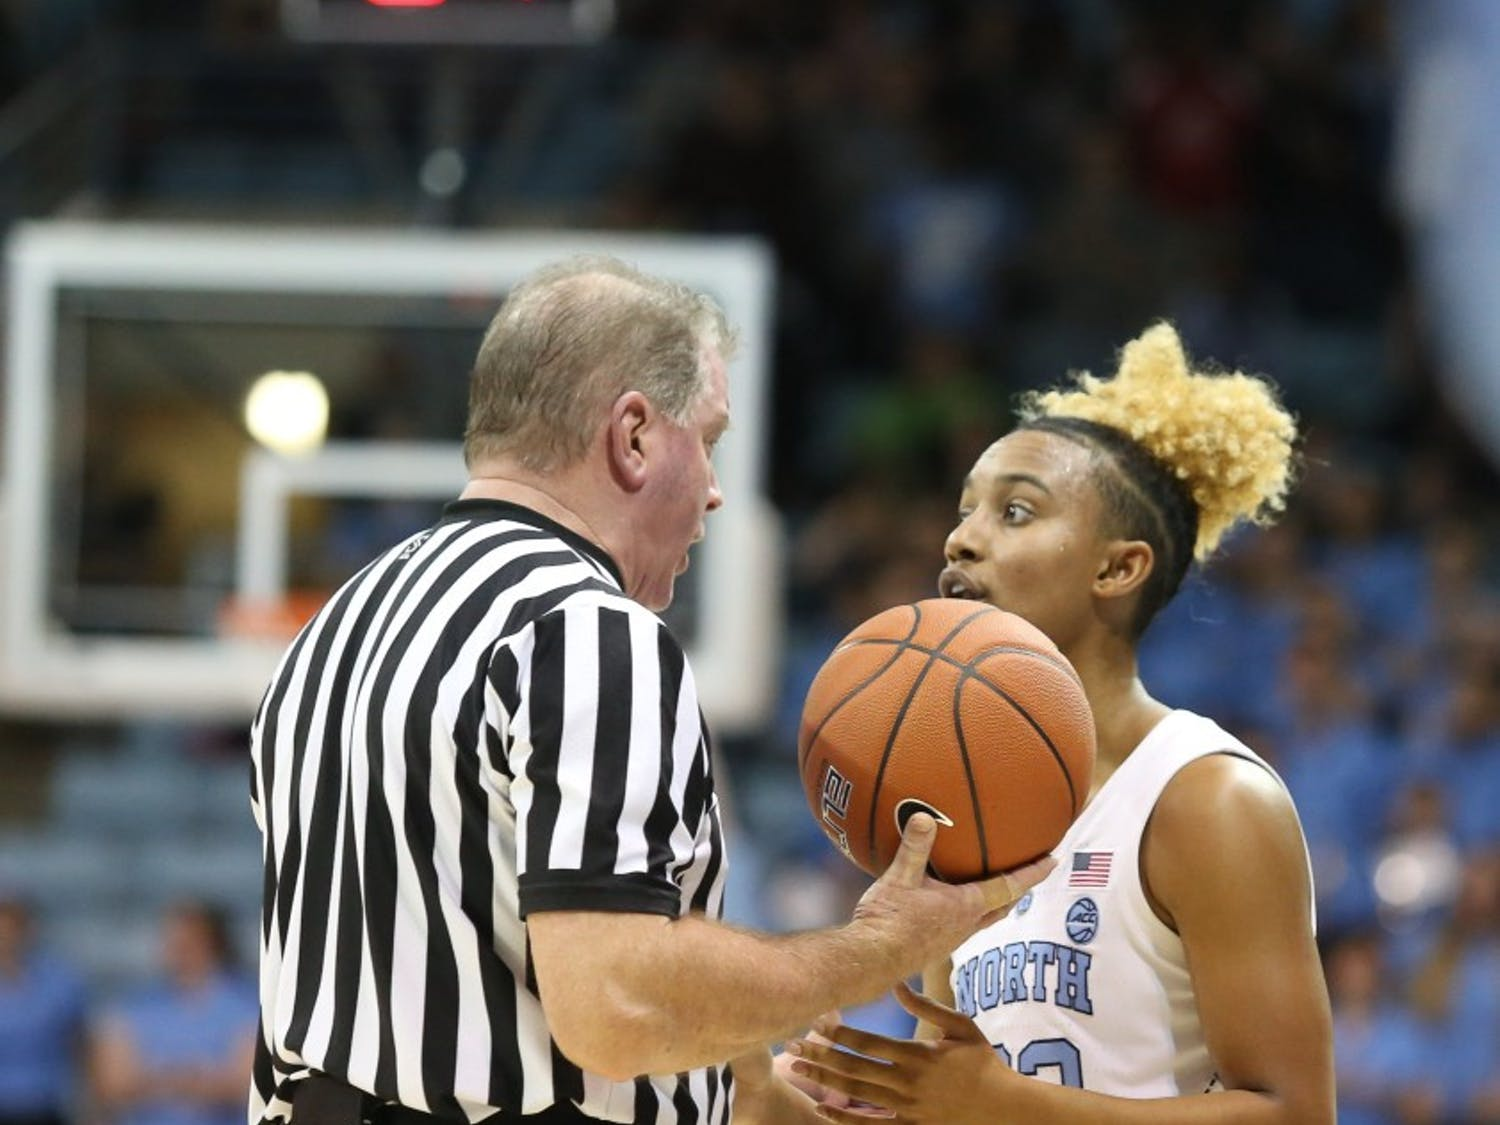 Senior guard Paris Kea (22) talks with a referee during a game against Notre Dame in Carmichael Arena on Sunday, Jan. 27, 2019. UNC won 78-73.